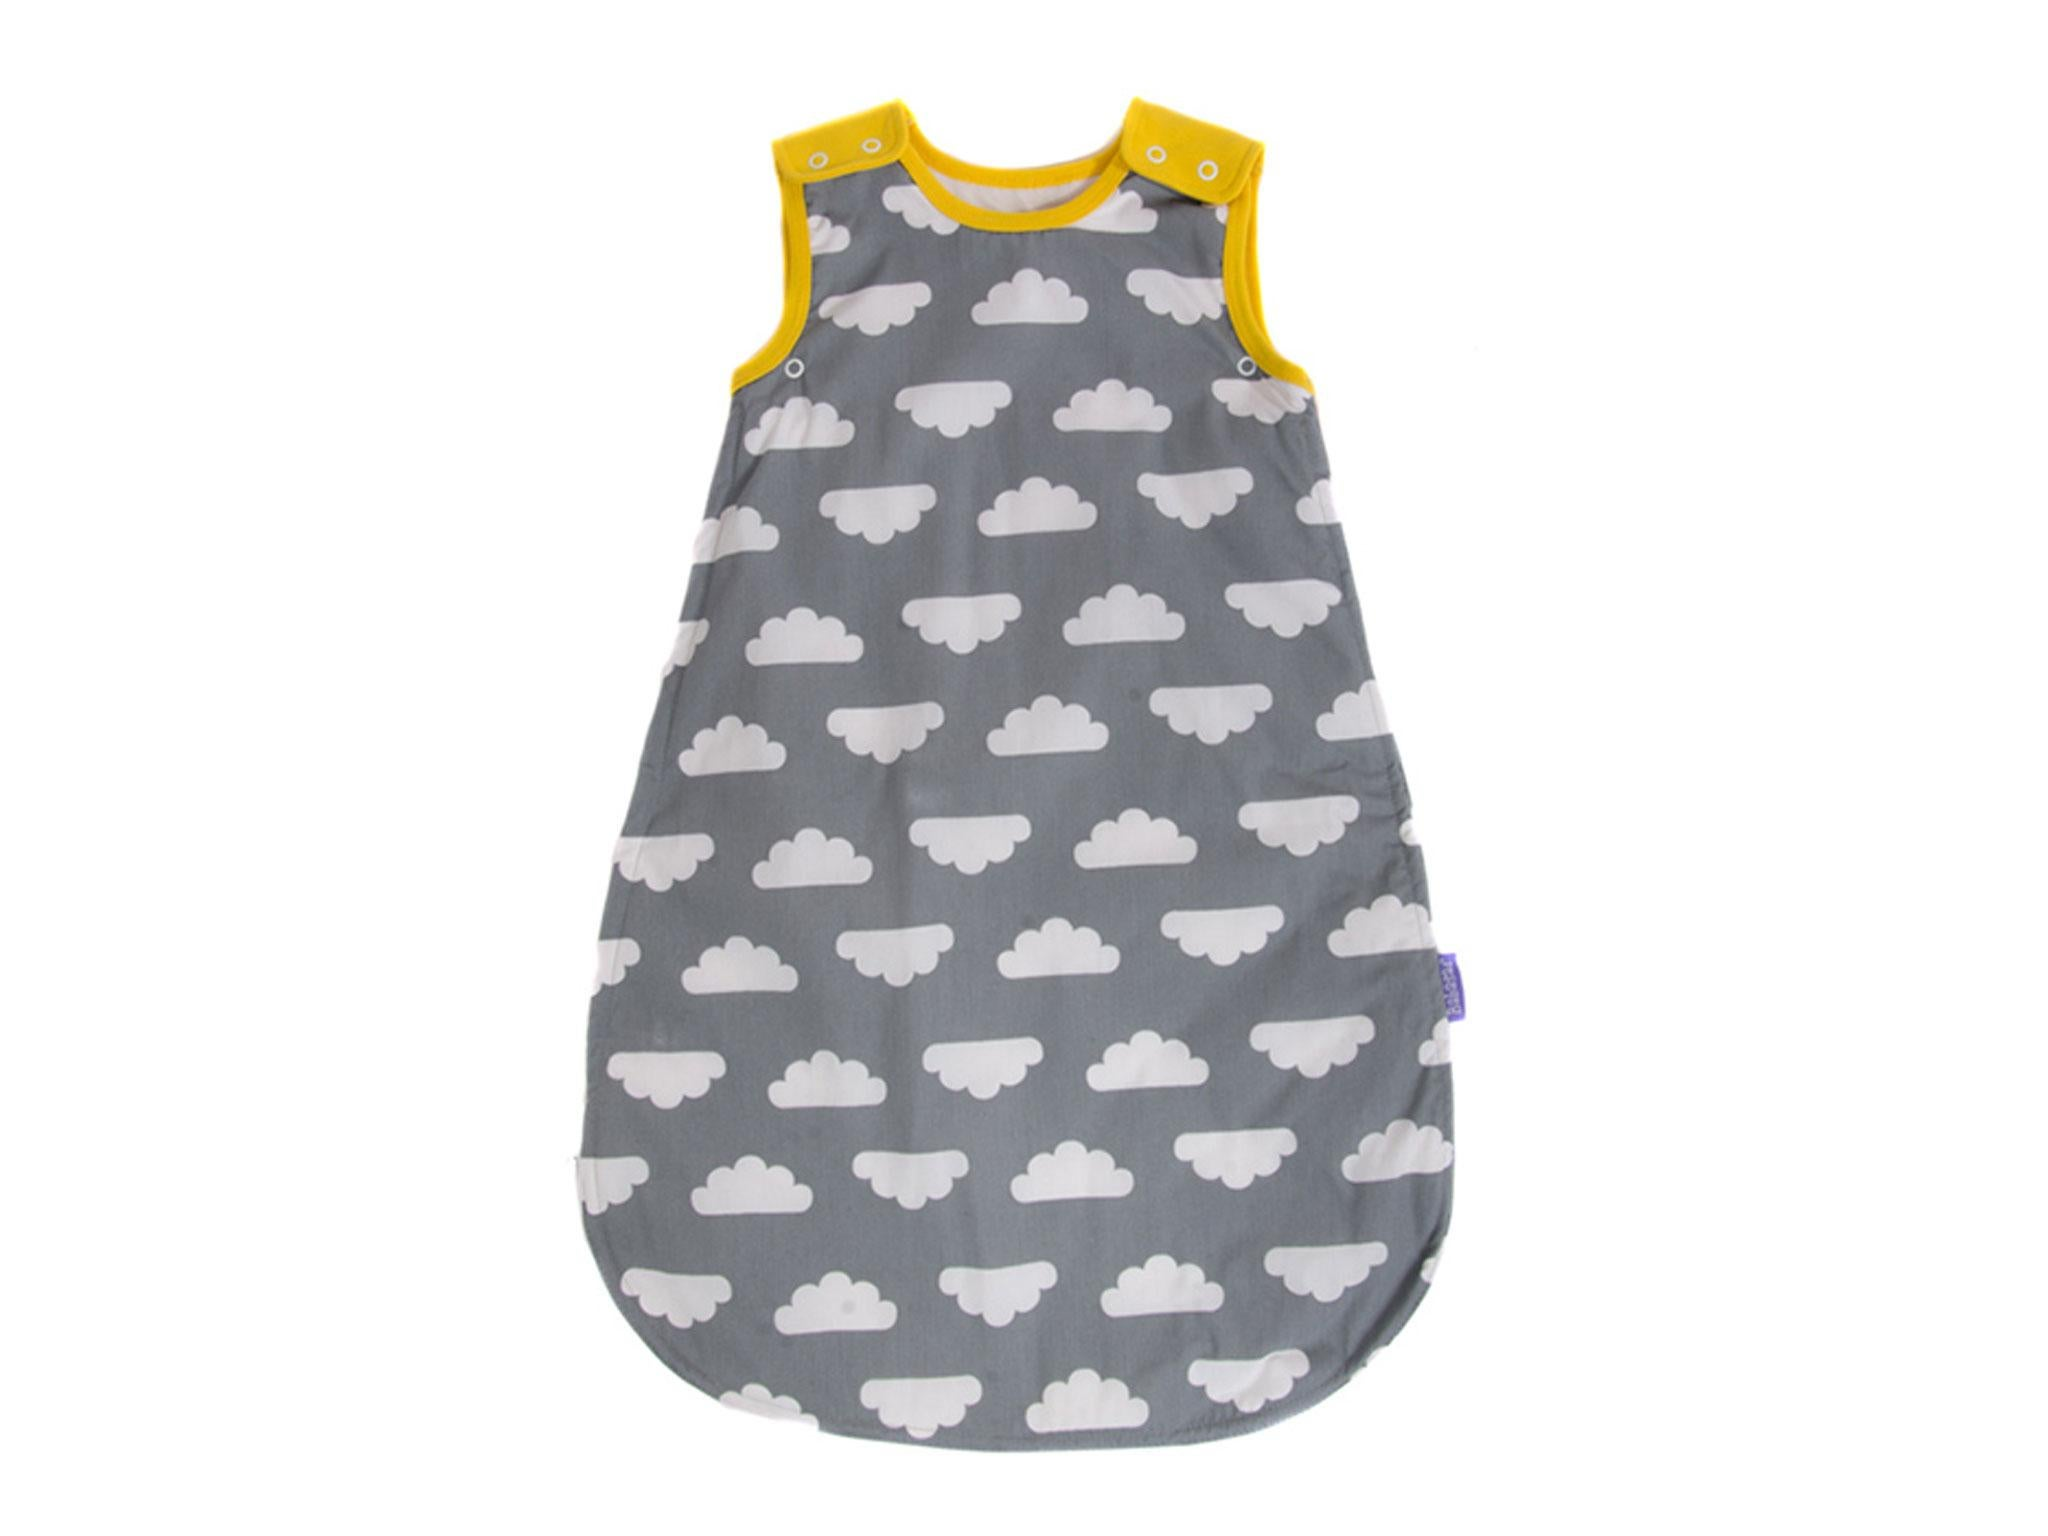 12 best sleeping bags for babies and toddlers | The Independent